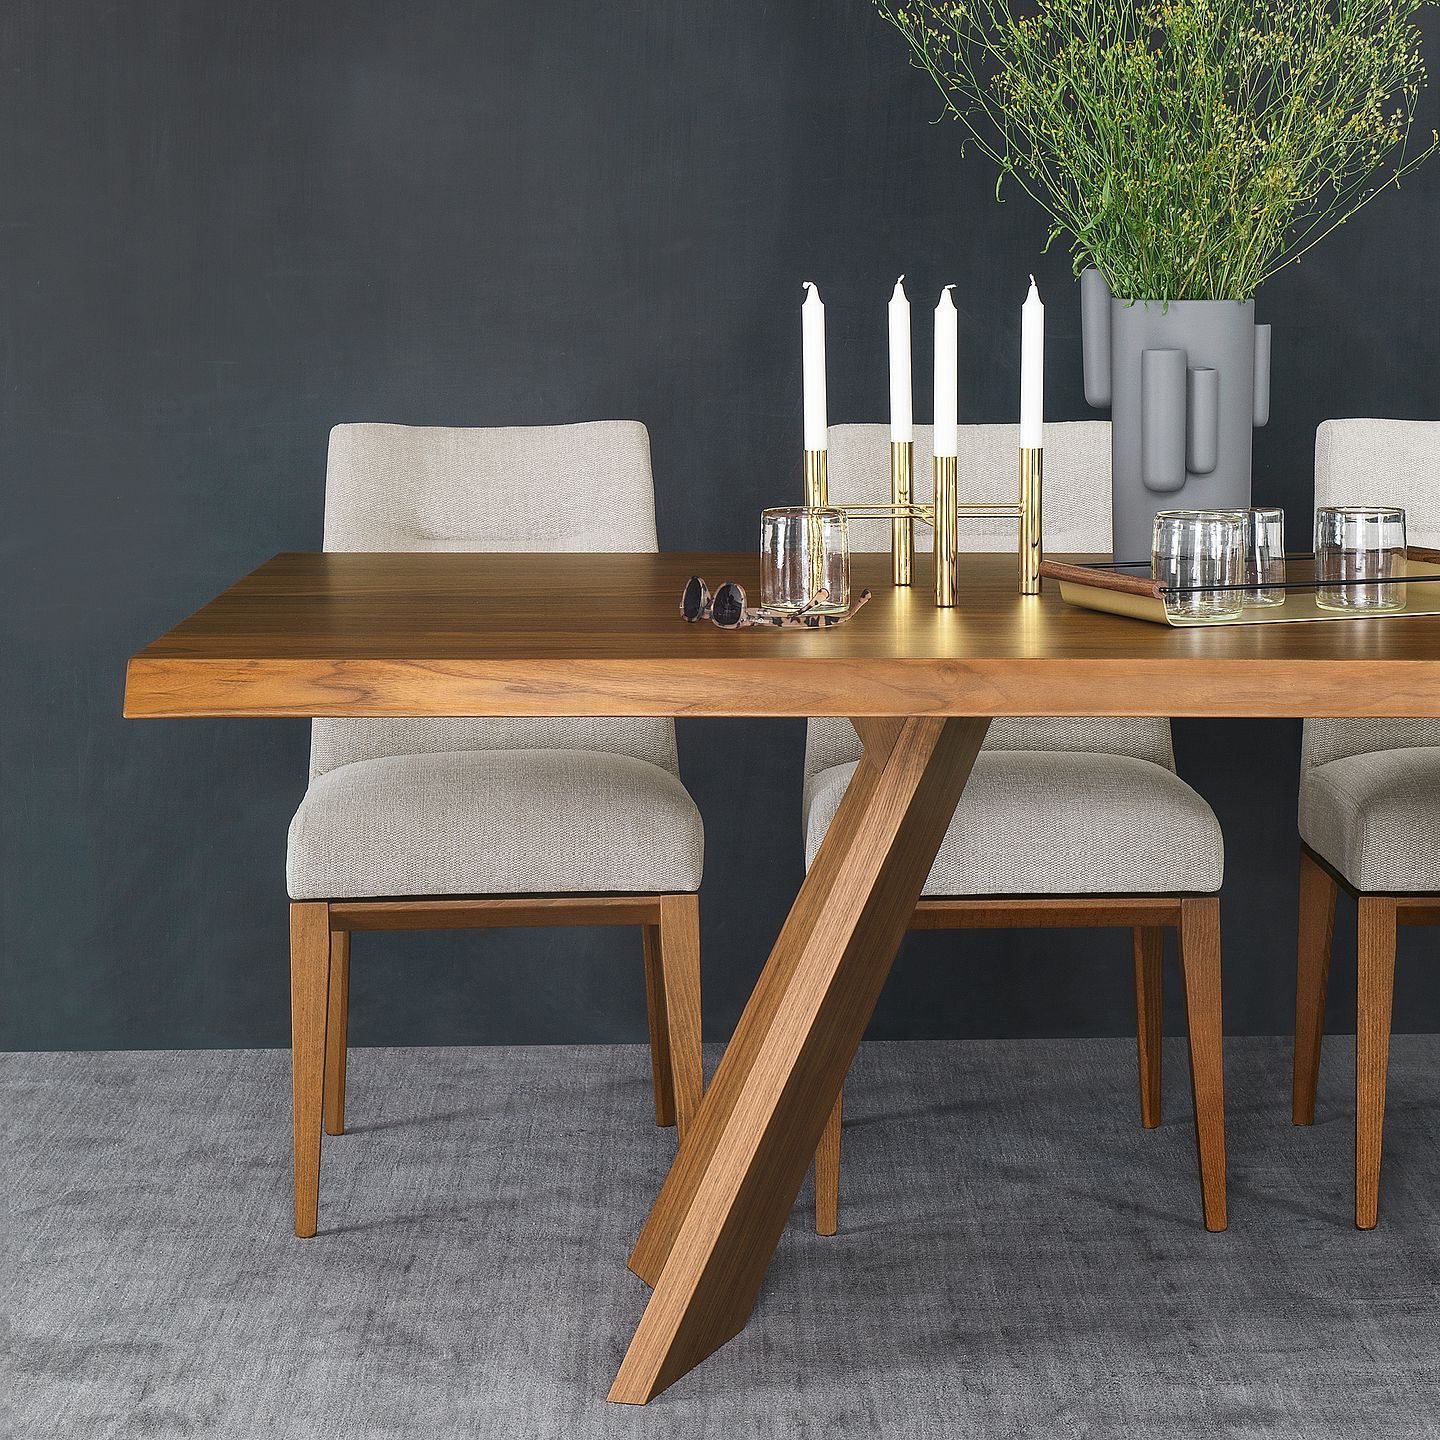 Current Home Furniture: Italian Design Furnishingcalligaris – Calligaris Throughout North Reading 5 Piece Dining Table Sets (View 24 of 25)